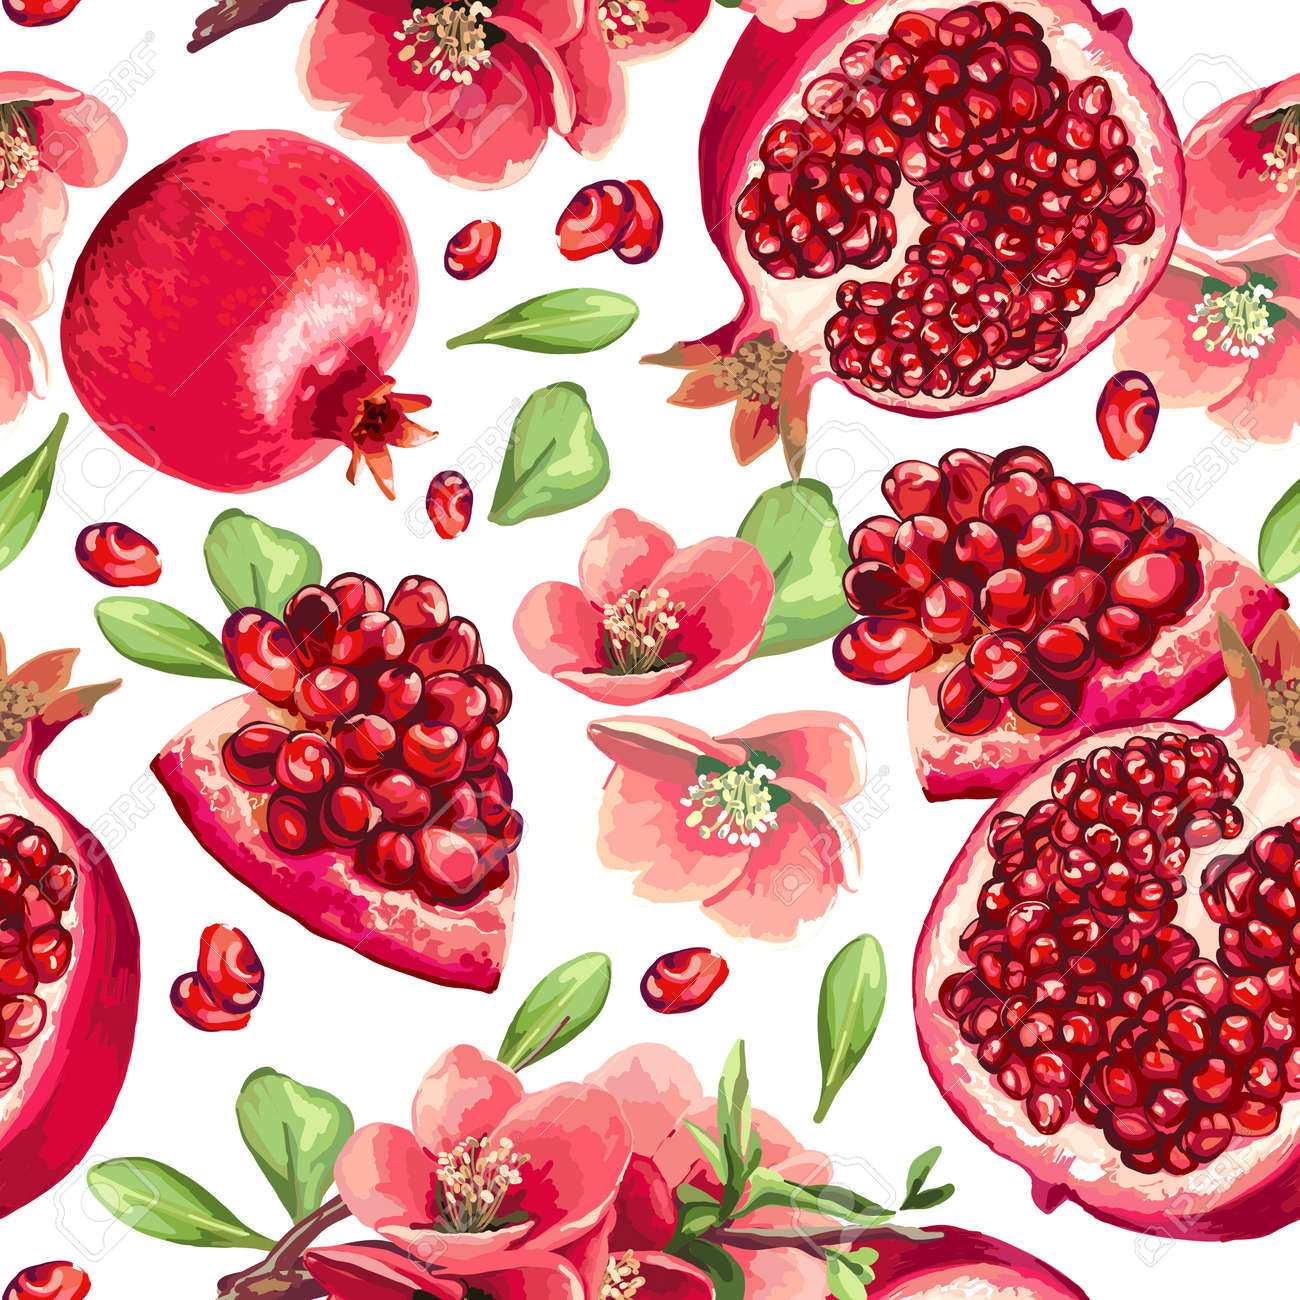 Pomegranate fruit and flowers of pomegranate tree. Seamless pattern. Standard-Bild - 71665883